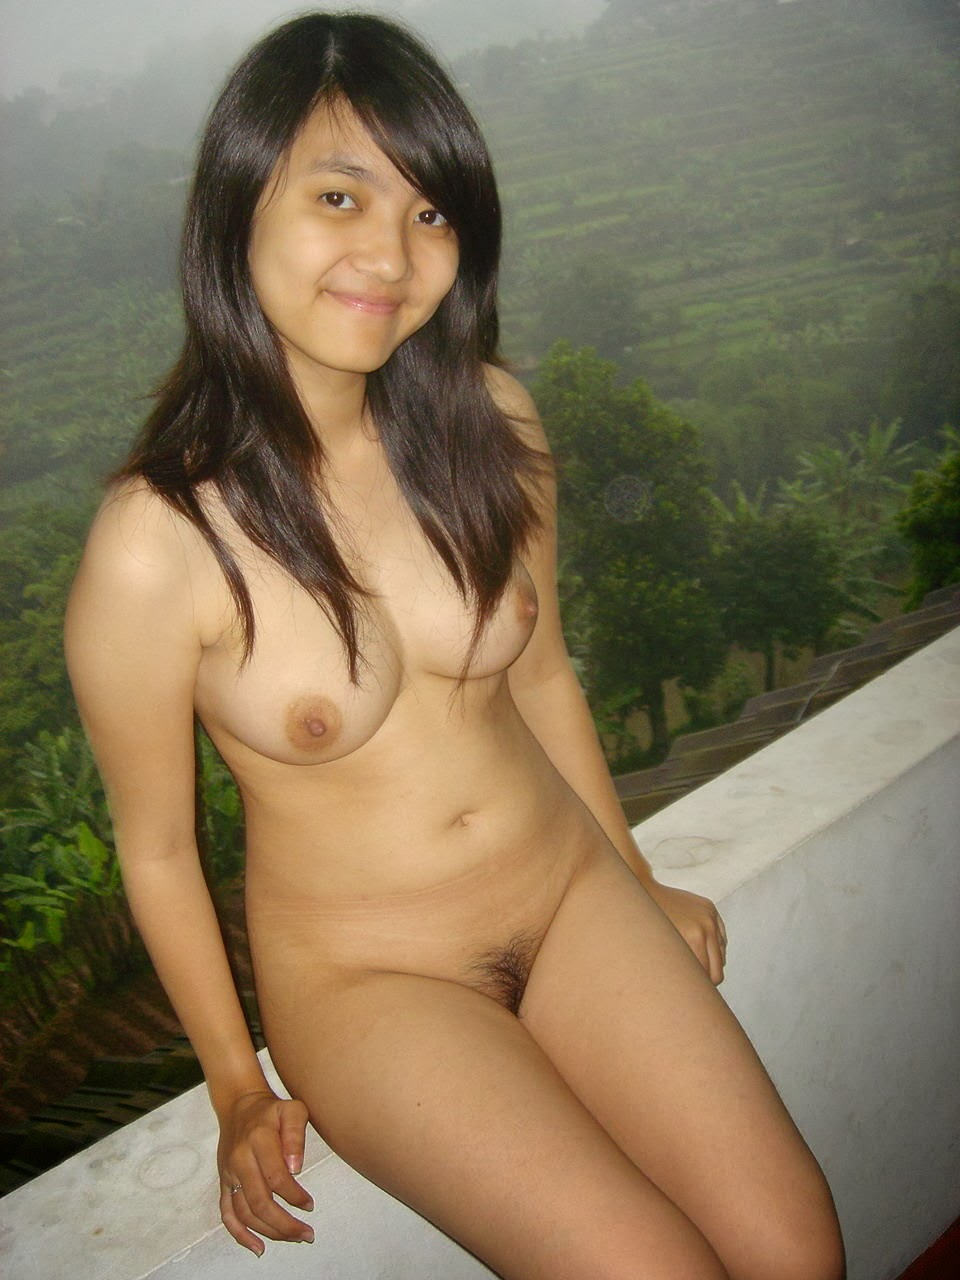 Indonesian bali girls sex